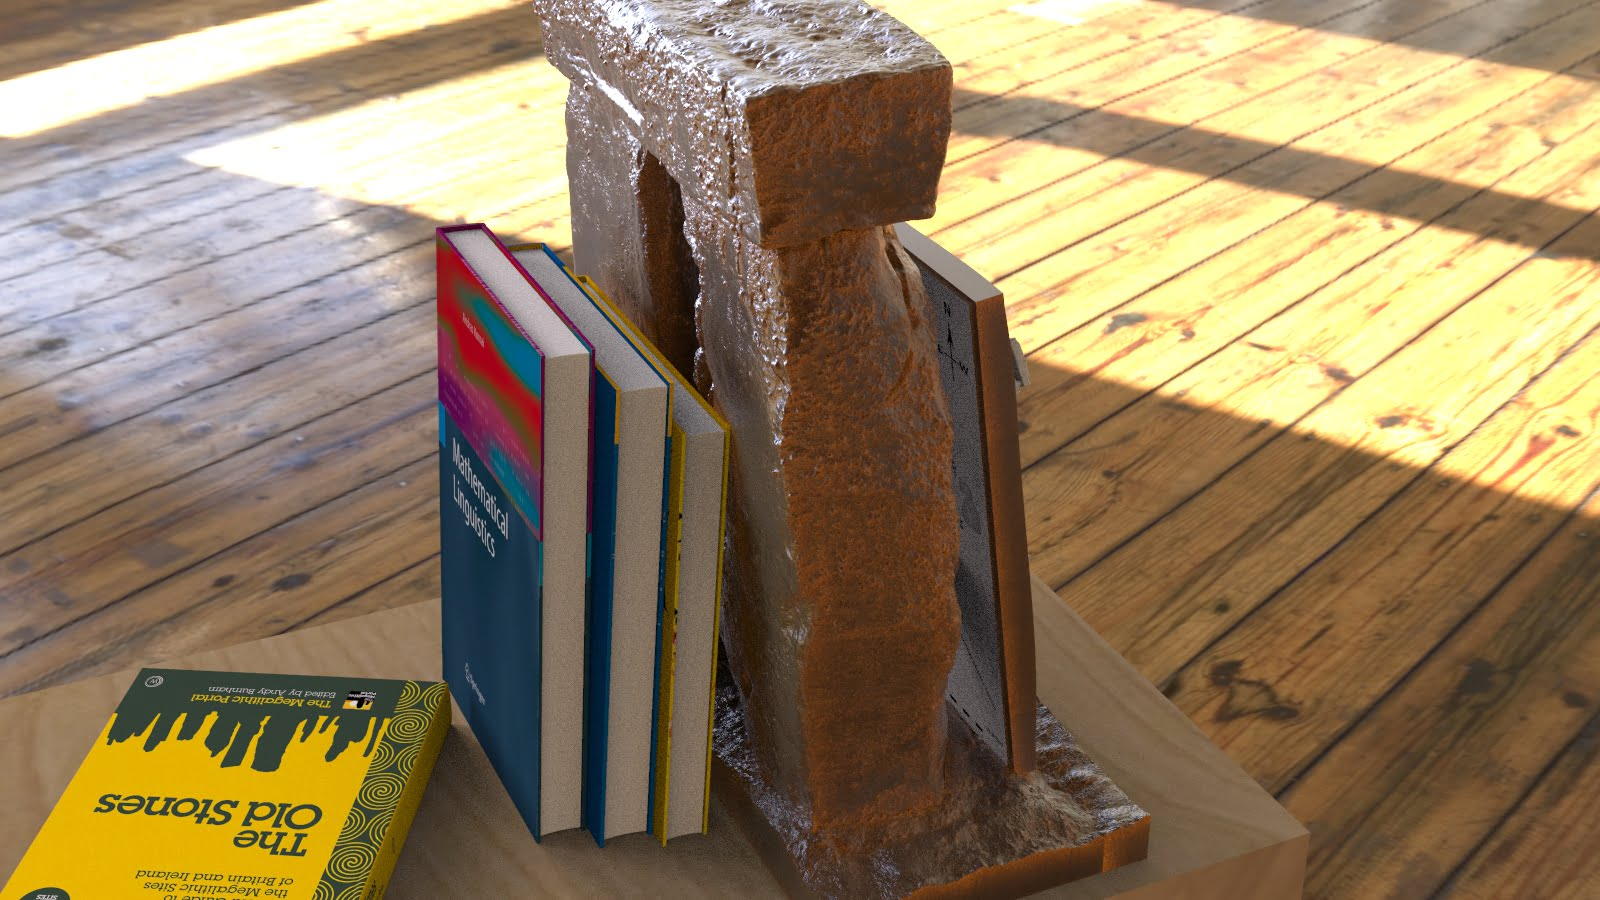 Buy Stonehenge Models: Stonehenge replica model bookend at 26th scale in rusted patina cold cast iron with lean to detachable full model at 200th scale 007  - 24th scale bookend with 200th full model -